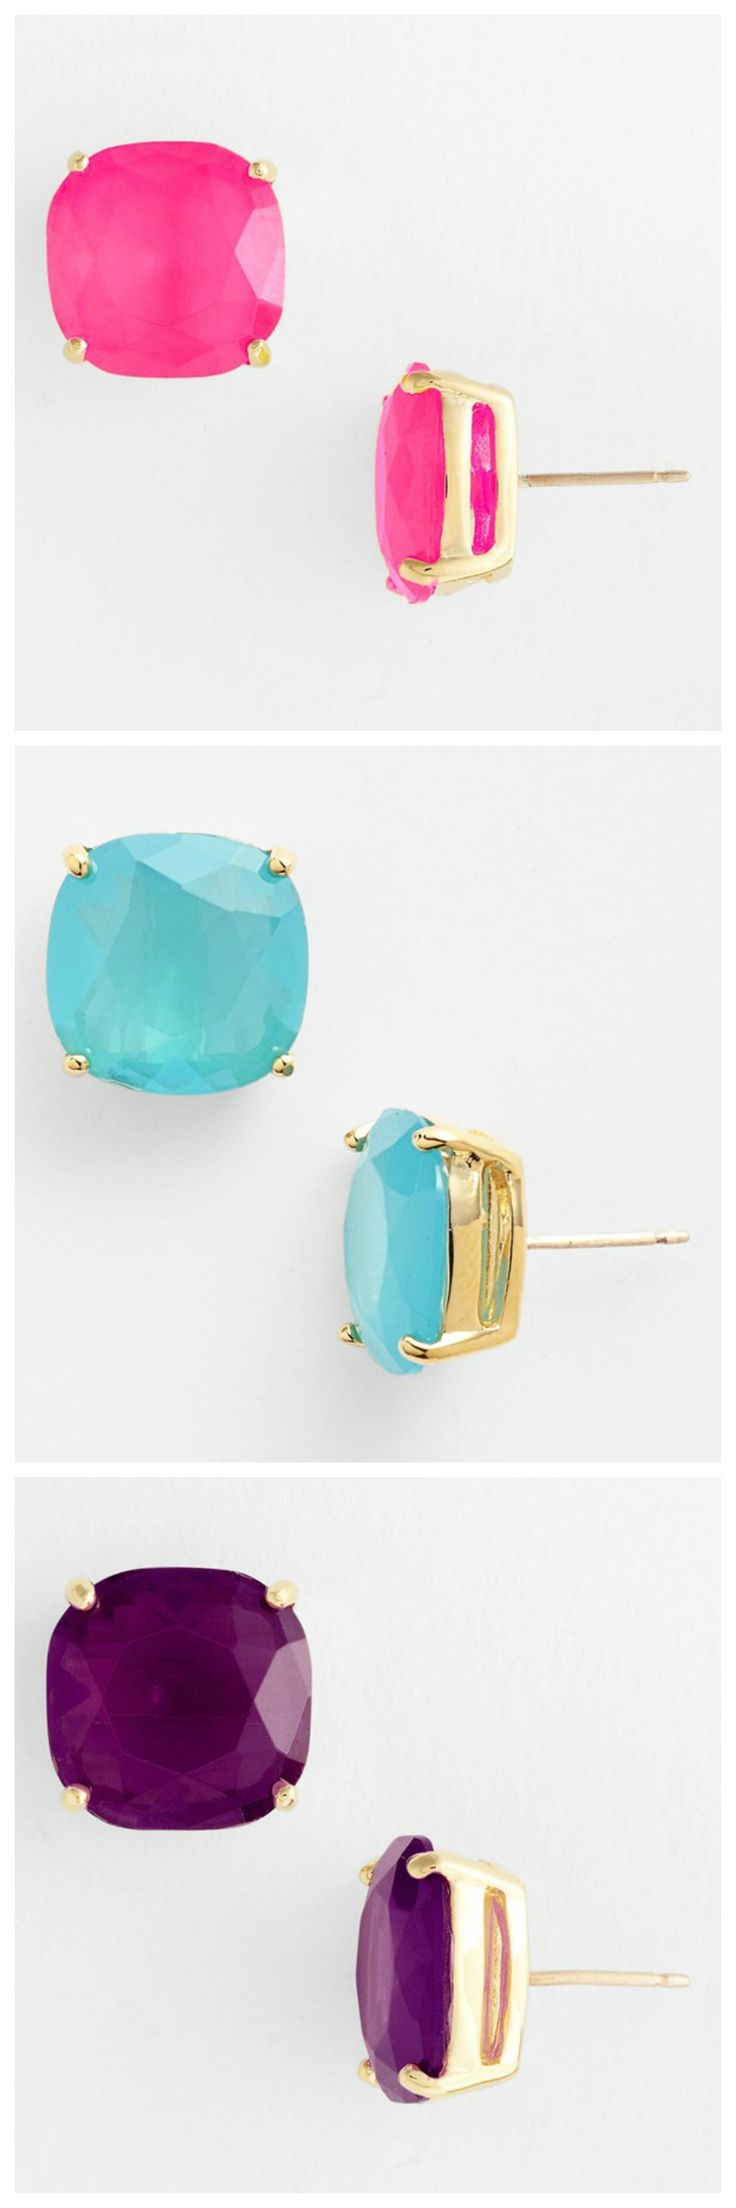 These colorful Kate Spade earrings make it easy to accessorize.